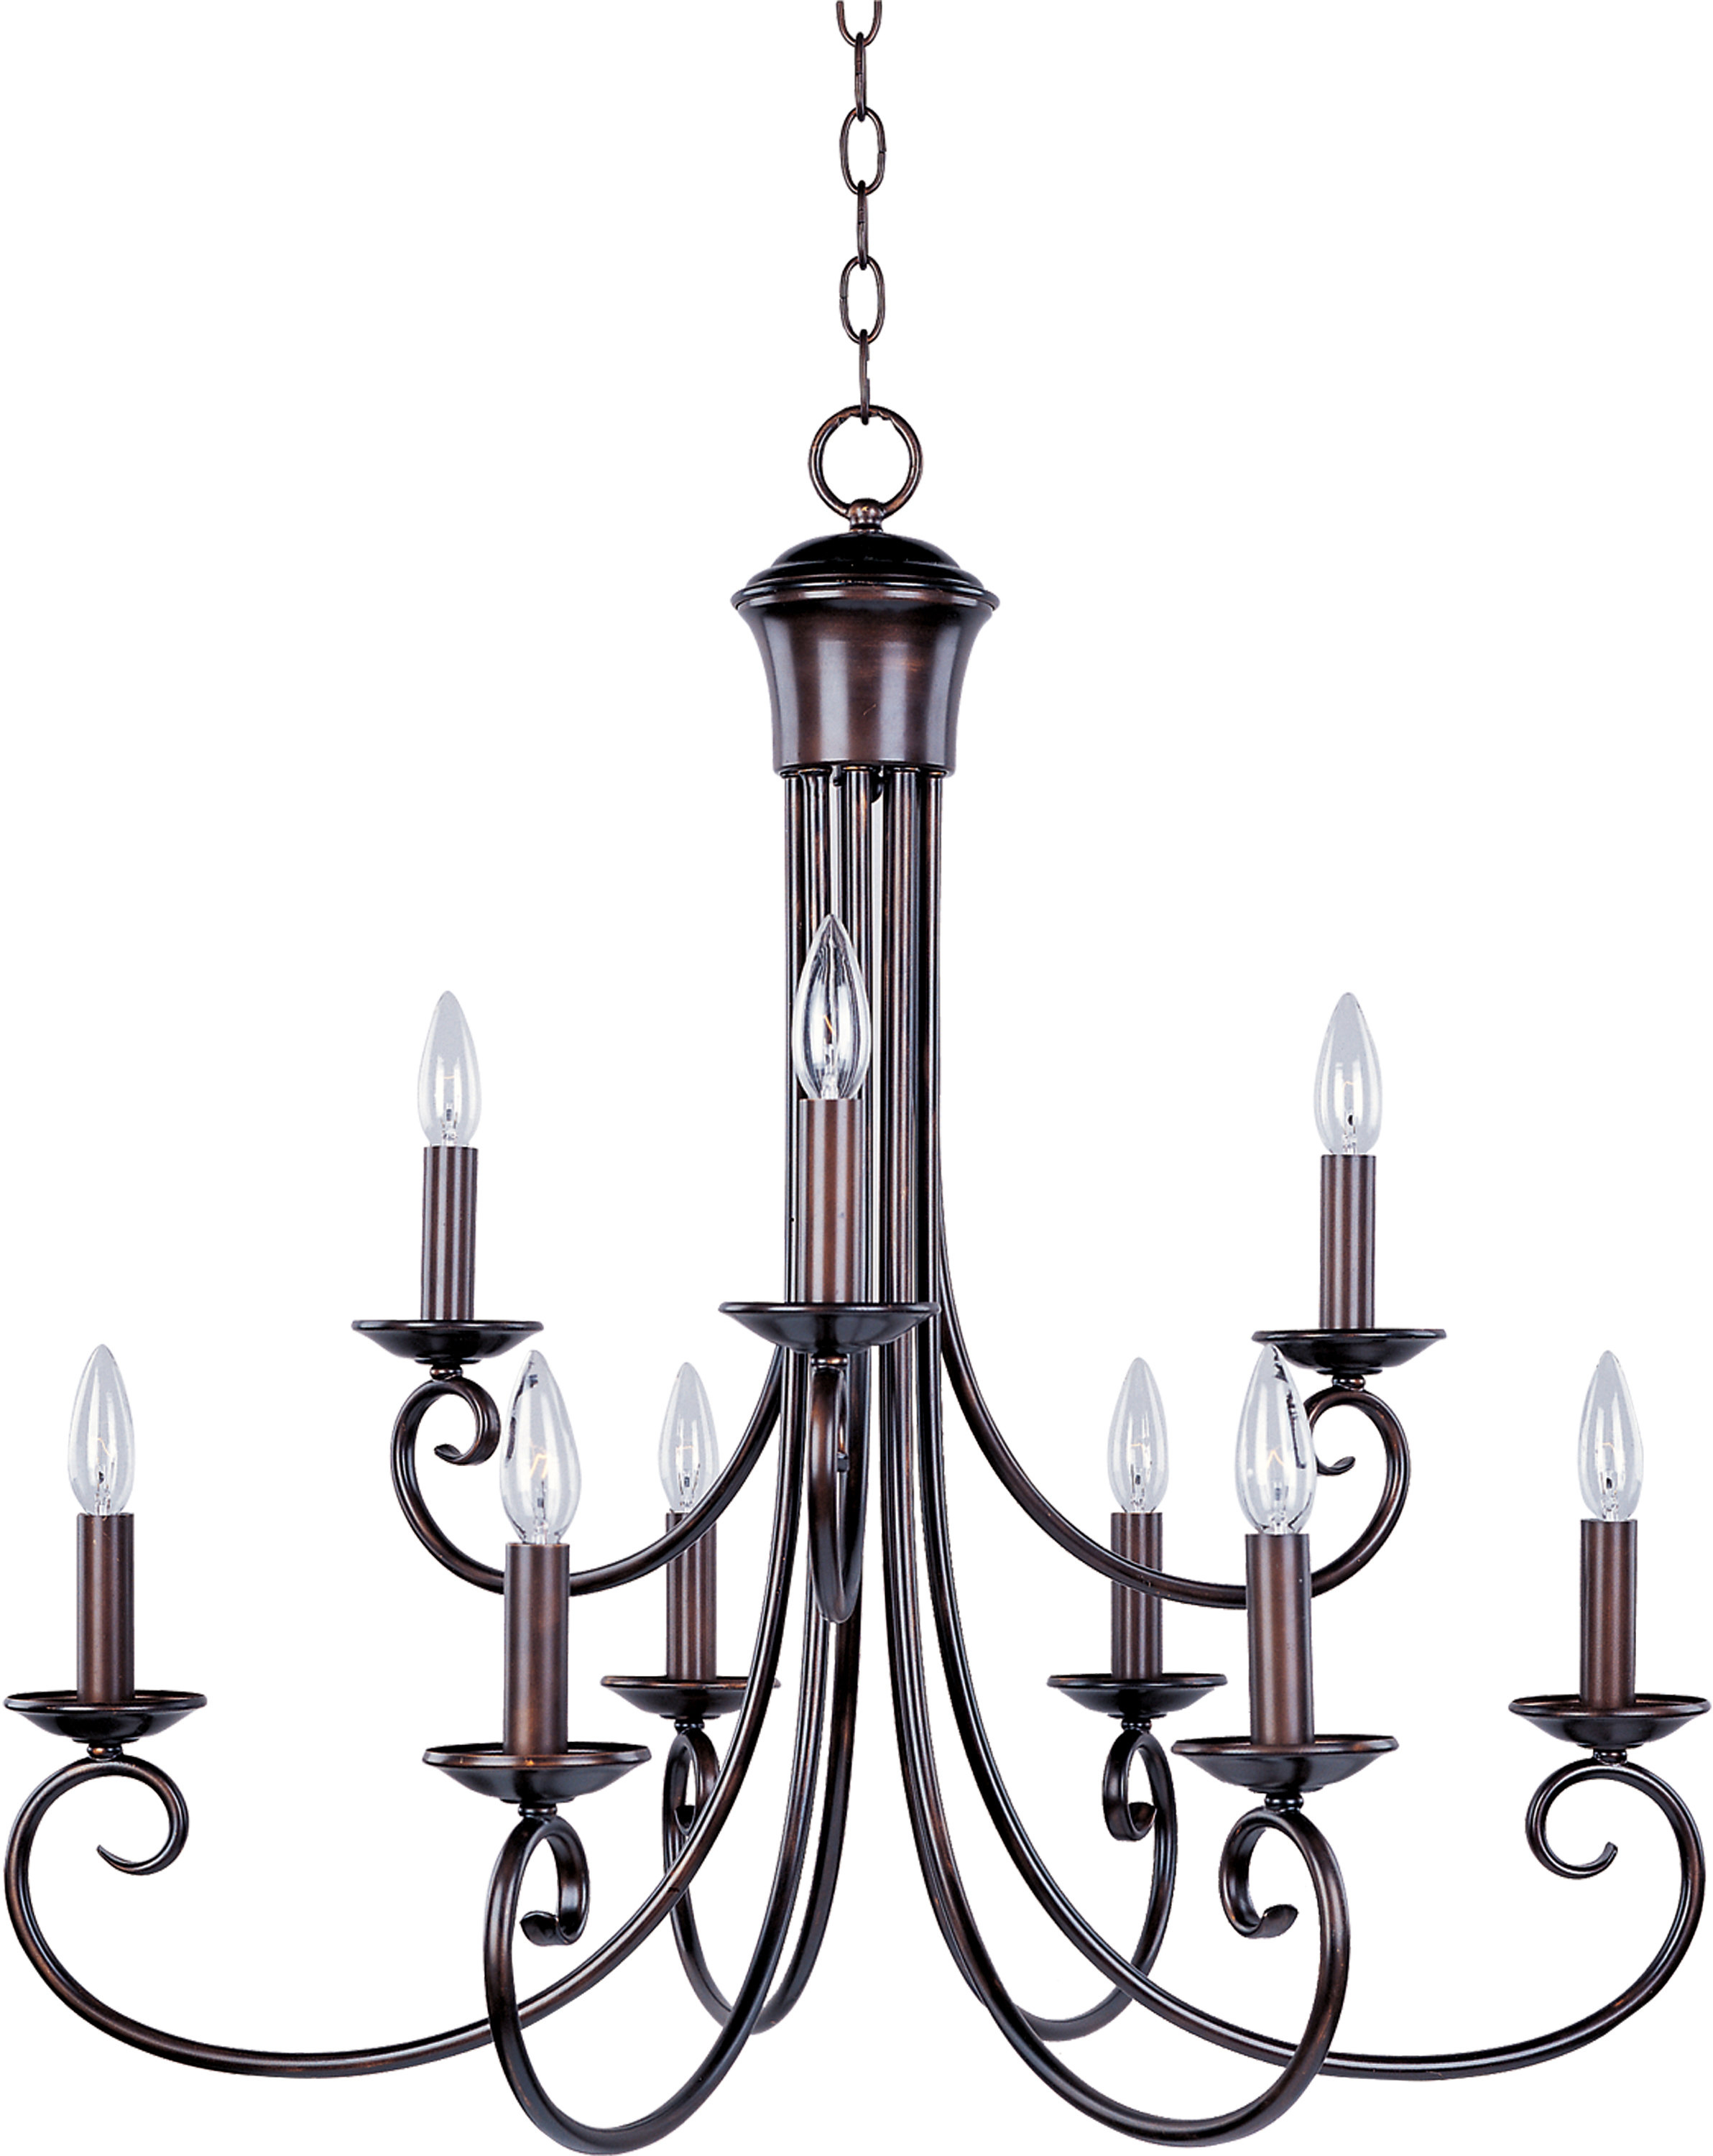 Latest Watford 9 Light Candle Style Chandeliers With Charlton Home Kenedy 9 Light Candle Style Chandelier (View 8 of 25)